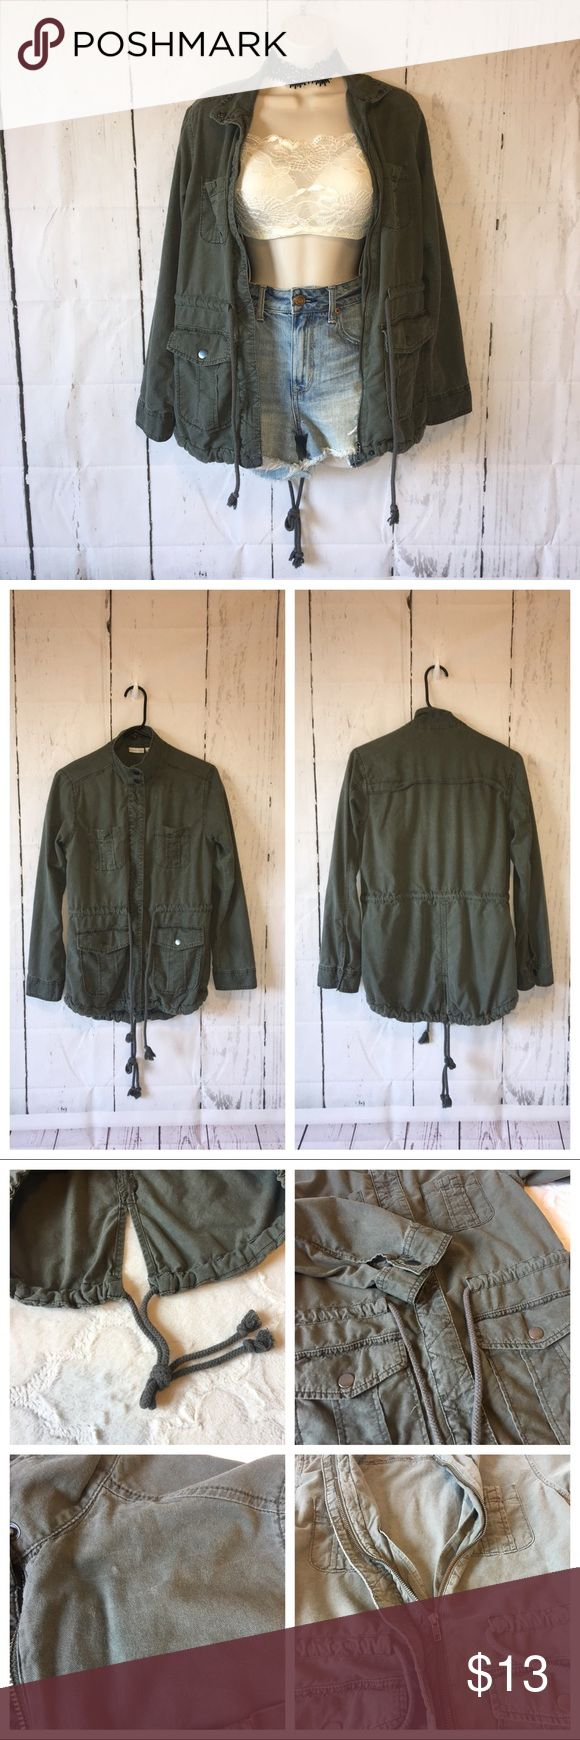 "BP green military jacket XS Green. 4 front pockets. No hood. Zip up. Tie @ waist & back hem. Lightweight. Distressed spots, see pic. Gently used.  Top of shoulder to hem: about 26 1/2"" Pit to pit: about 18"" bp Jackets & Coats Utility Jackets"